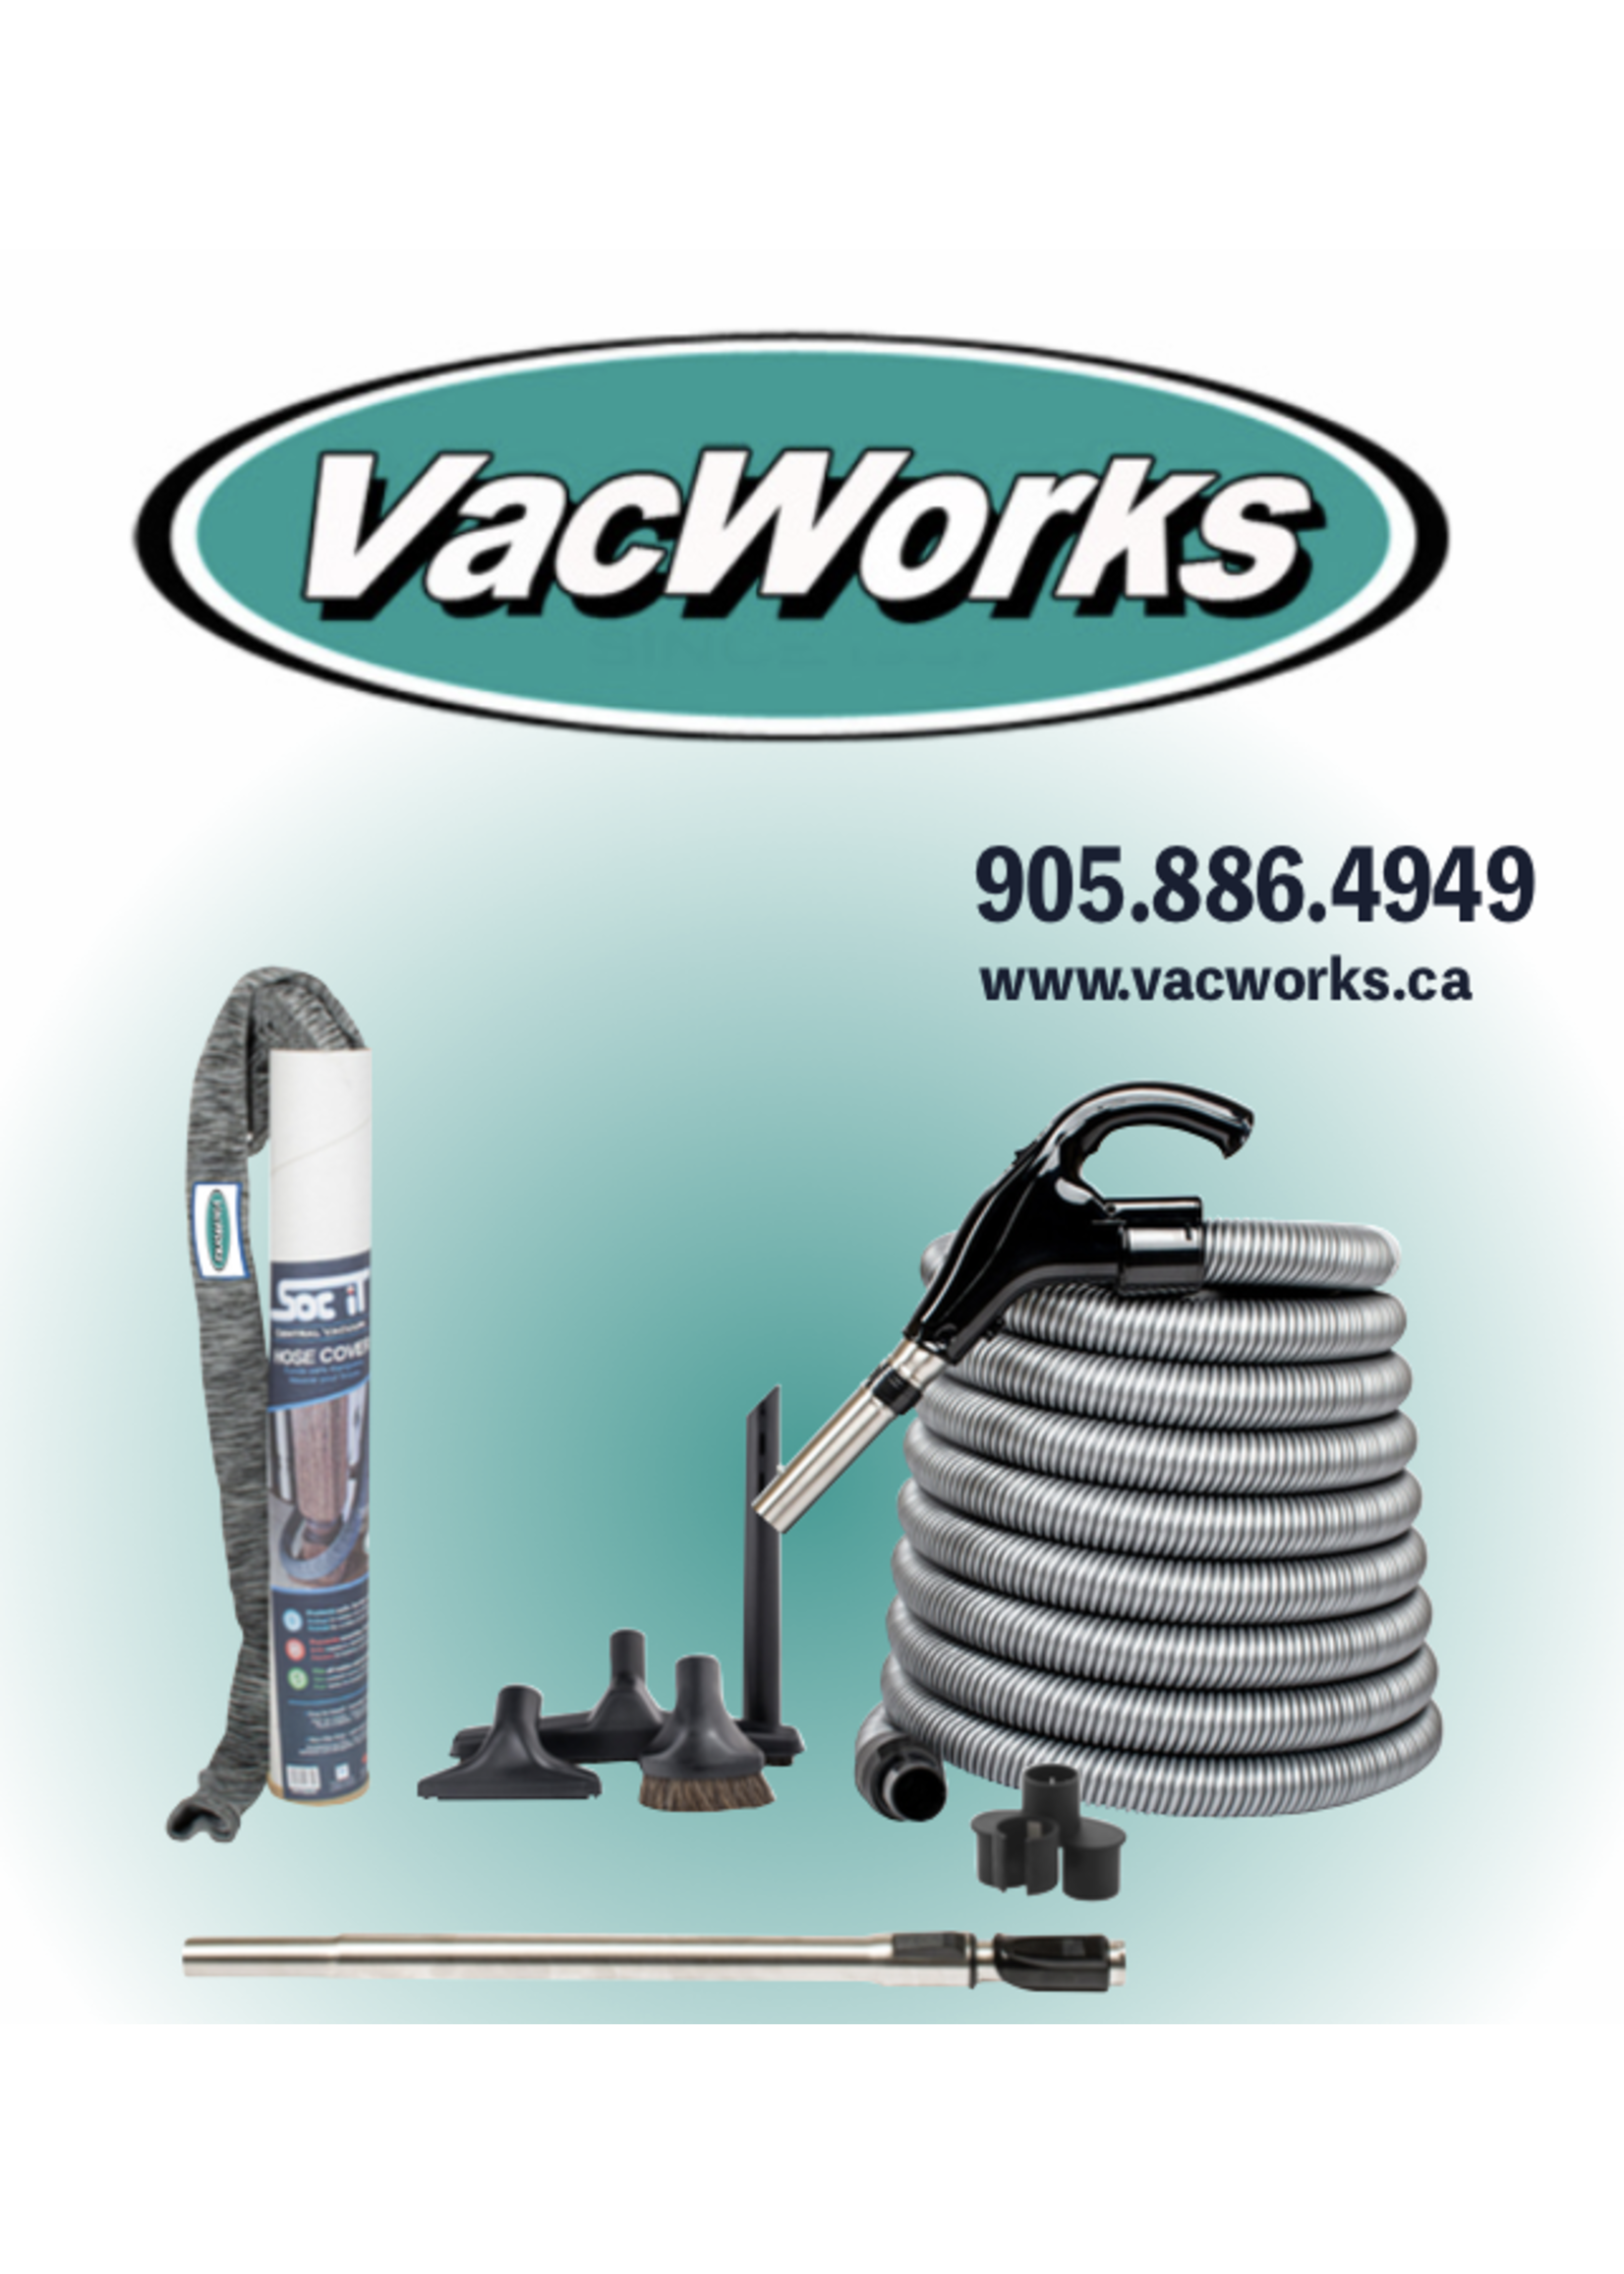 Lightweight Low Voltage Hose Kit with Cover - Vacworks